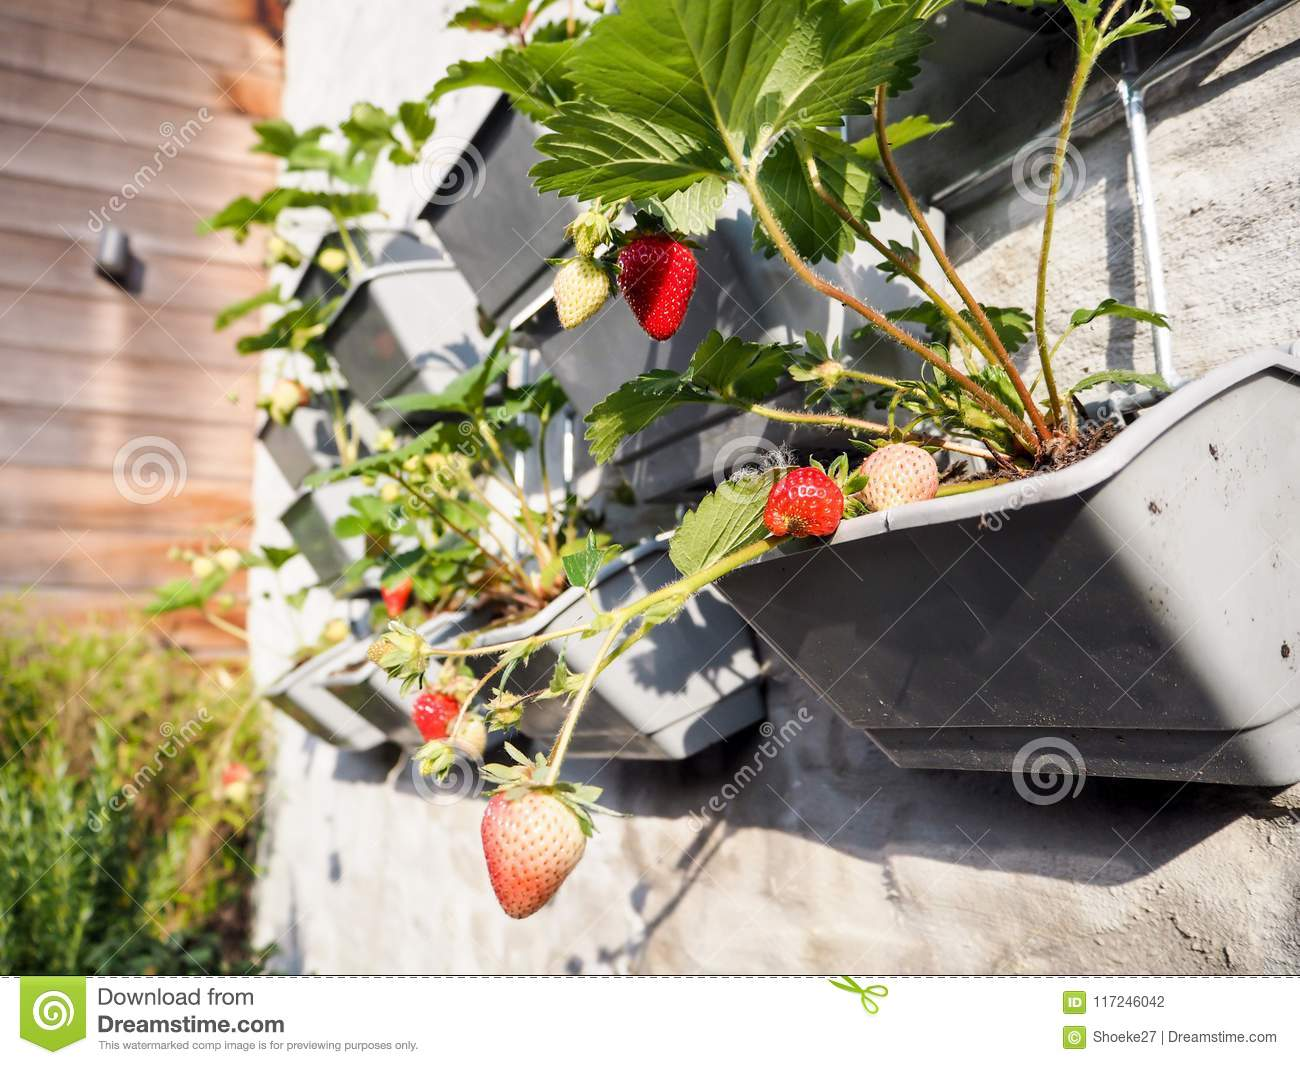 Ripe and unripe strawberries hanging from rows of strawberry plants